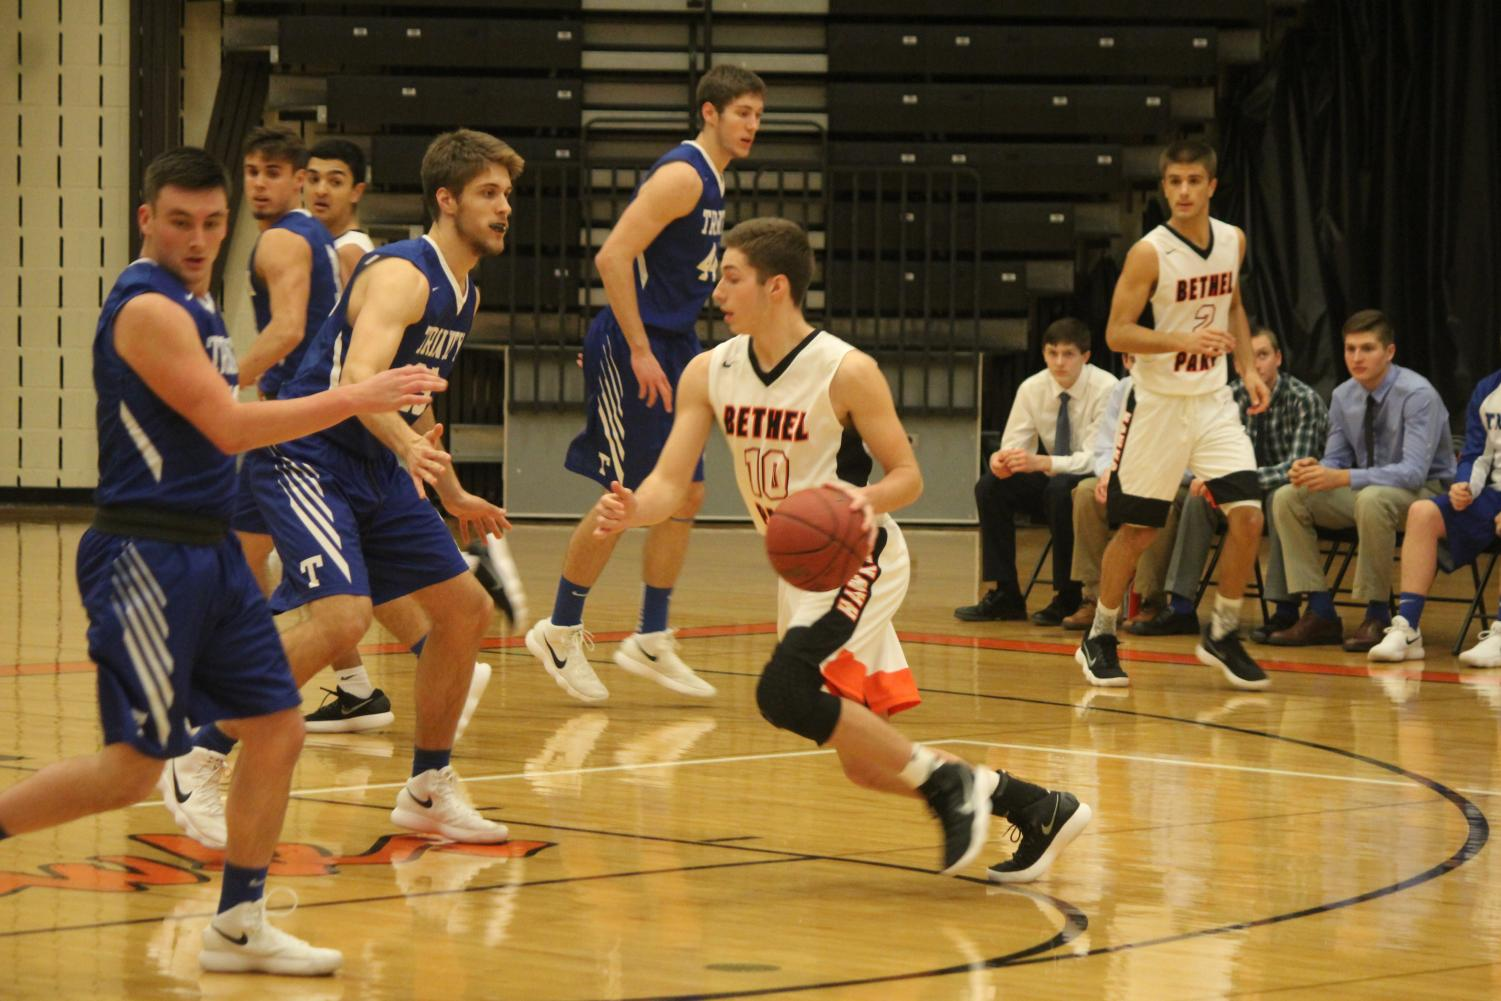 Senior Jake Nuttridge drives to the net during the boys game against Trinity on Dec. 12.